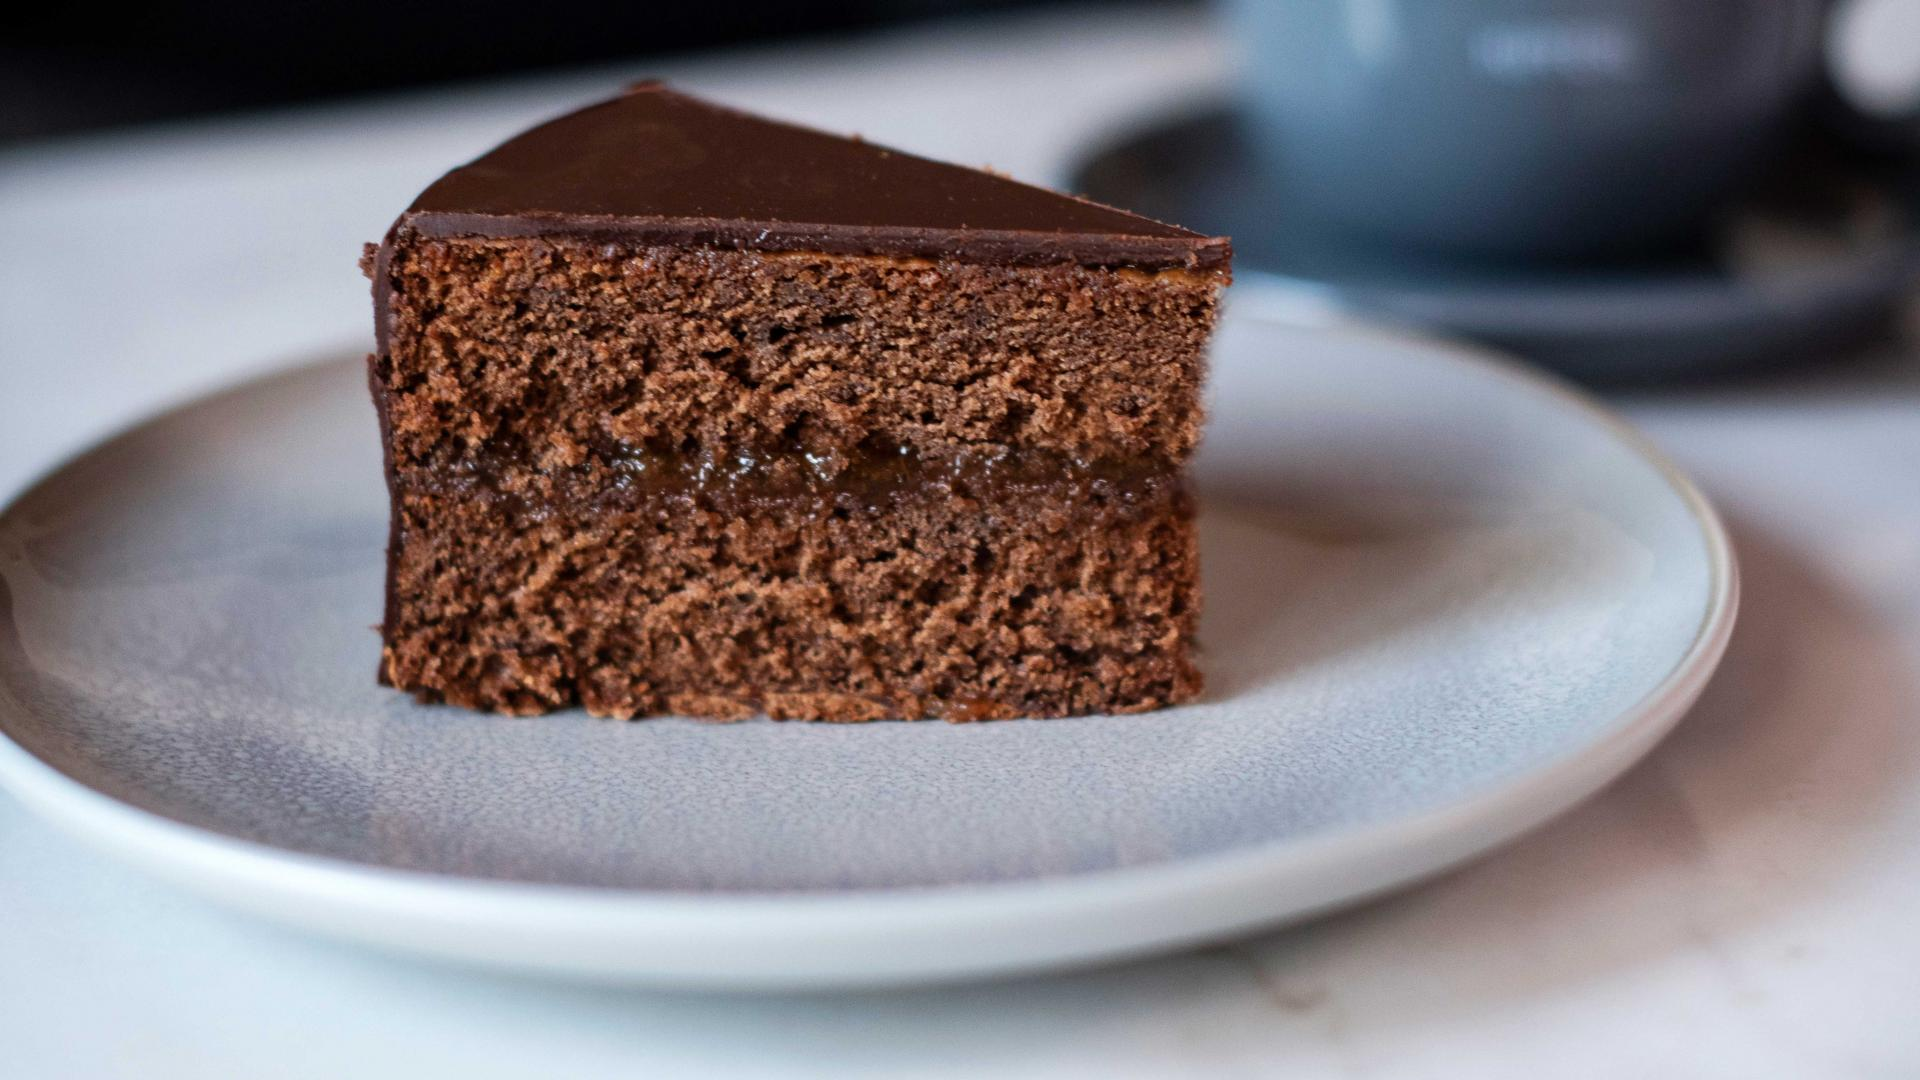 Dessert delivery London: A slice of sachertorte from Kipferl